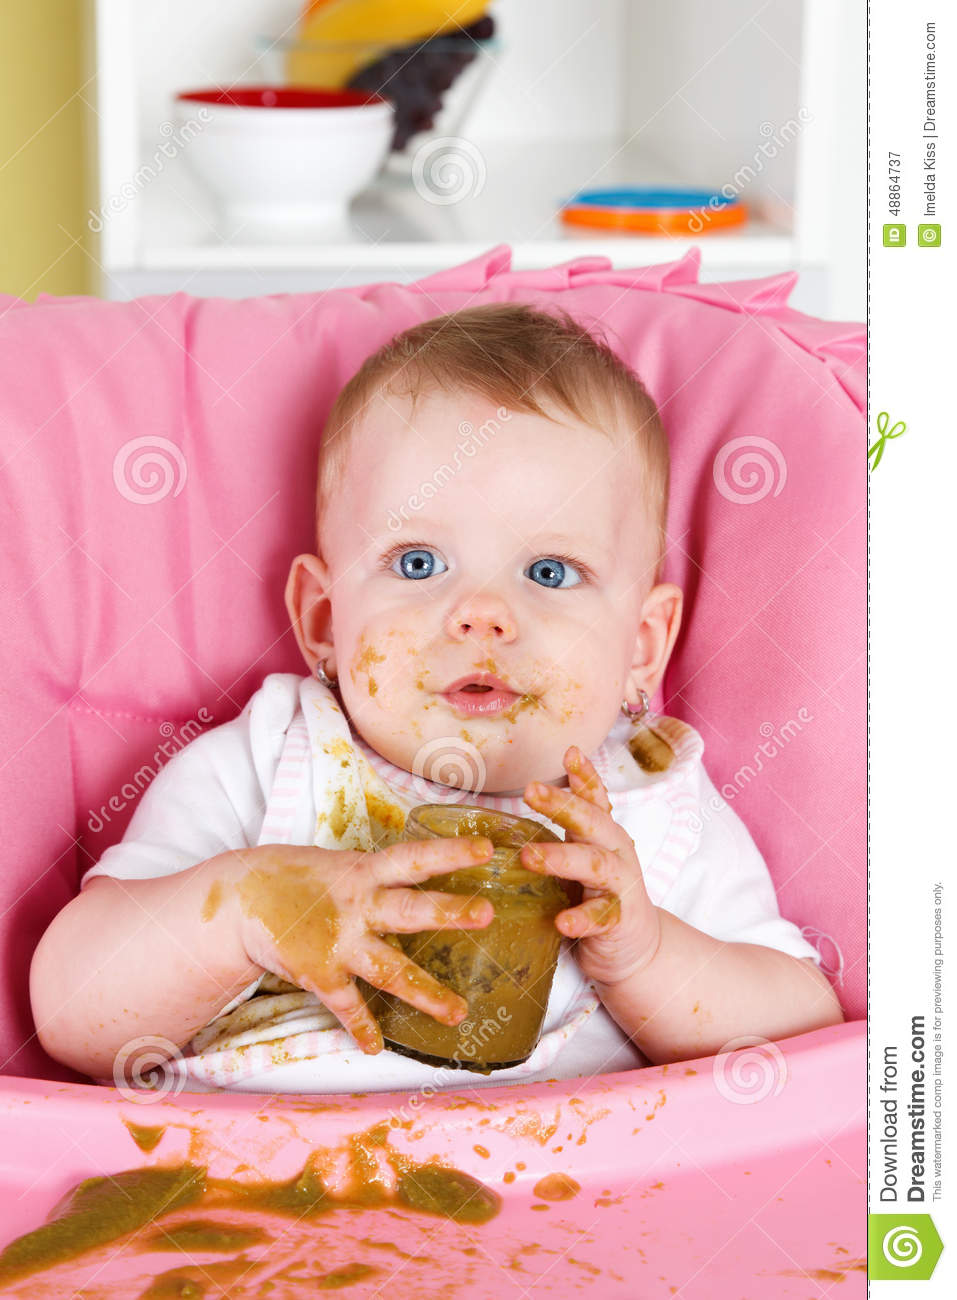 naughty baby girl making a mess while eating stock image image of